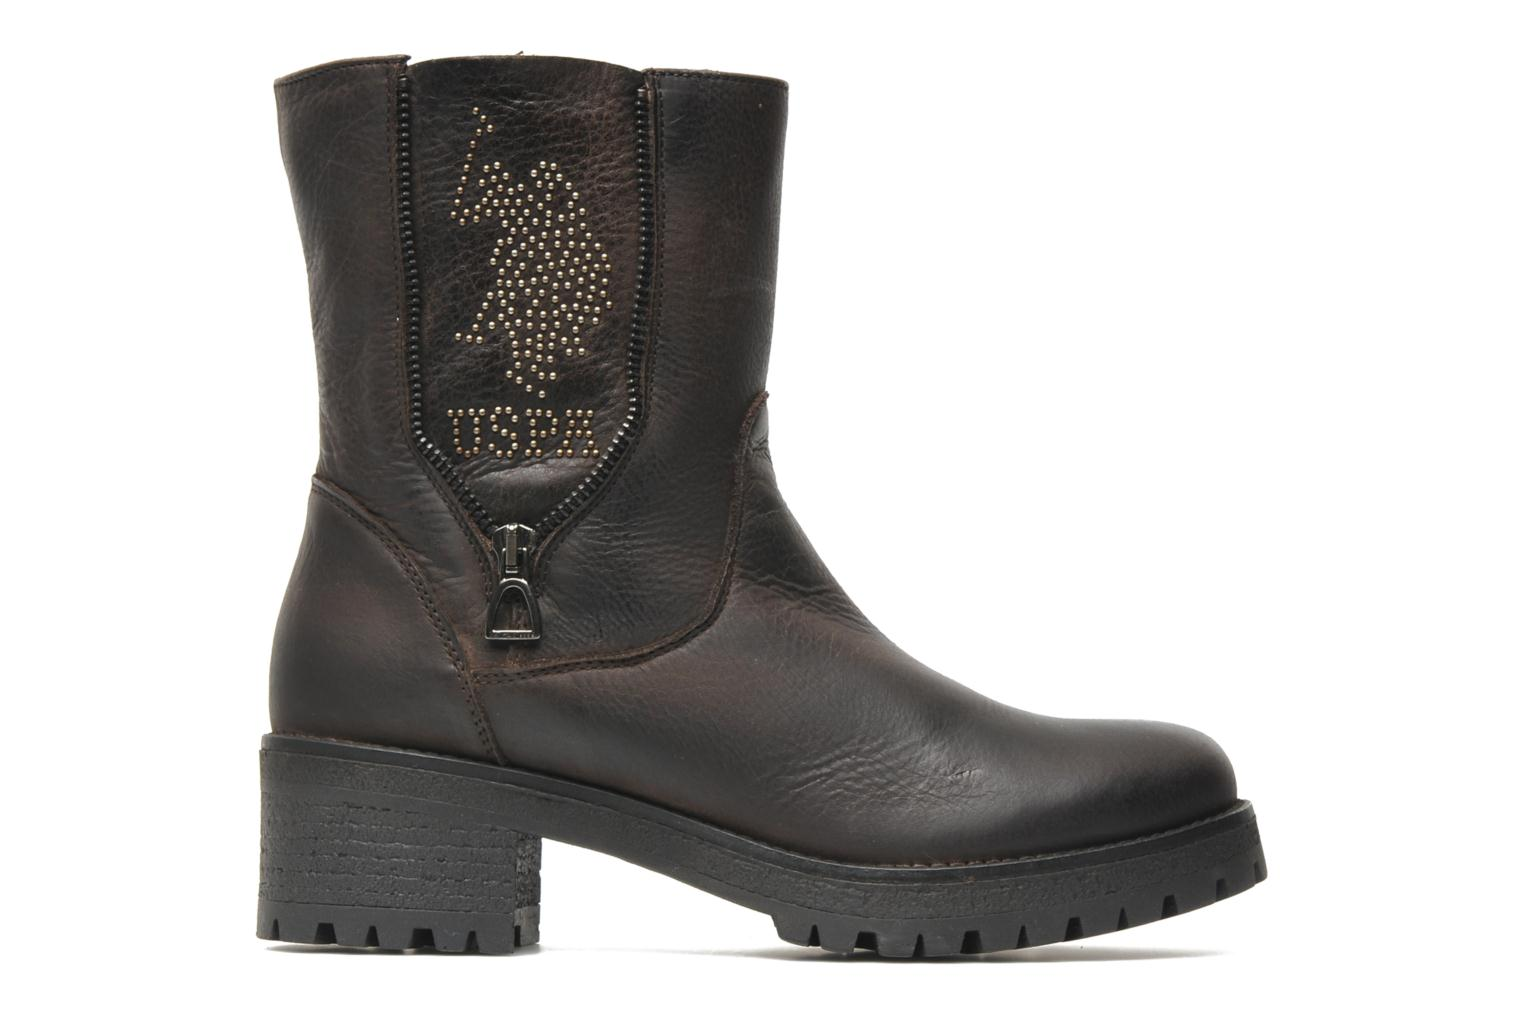 Bottines et boots U.S Polo Assn. Federica Leather Marron vue derrière